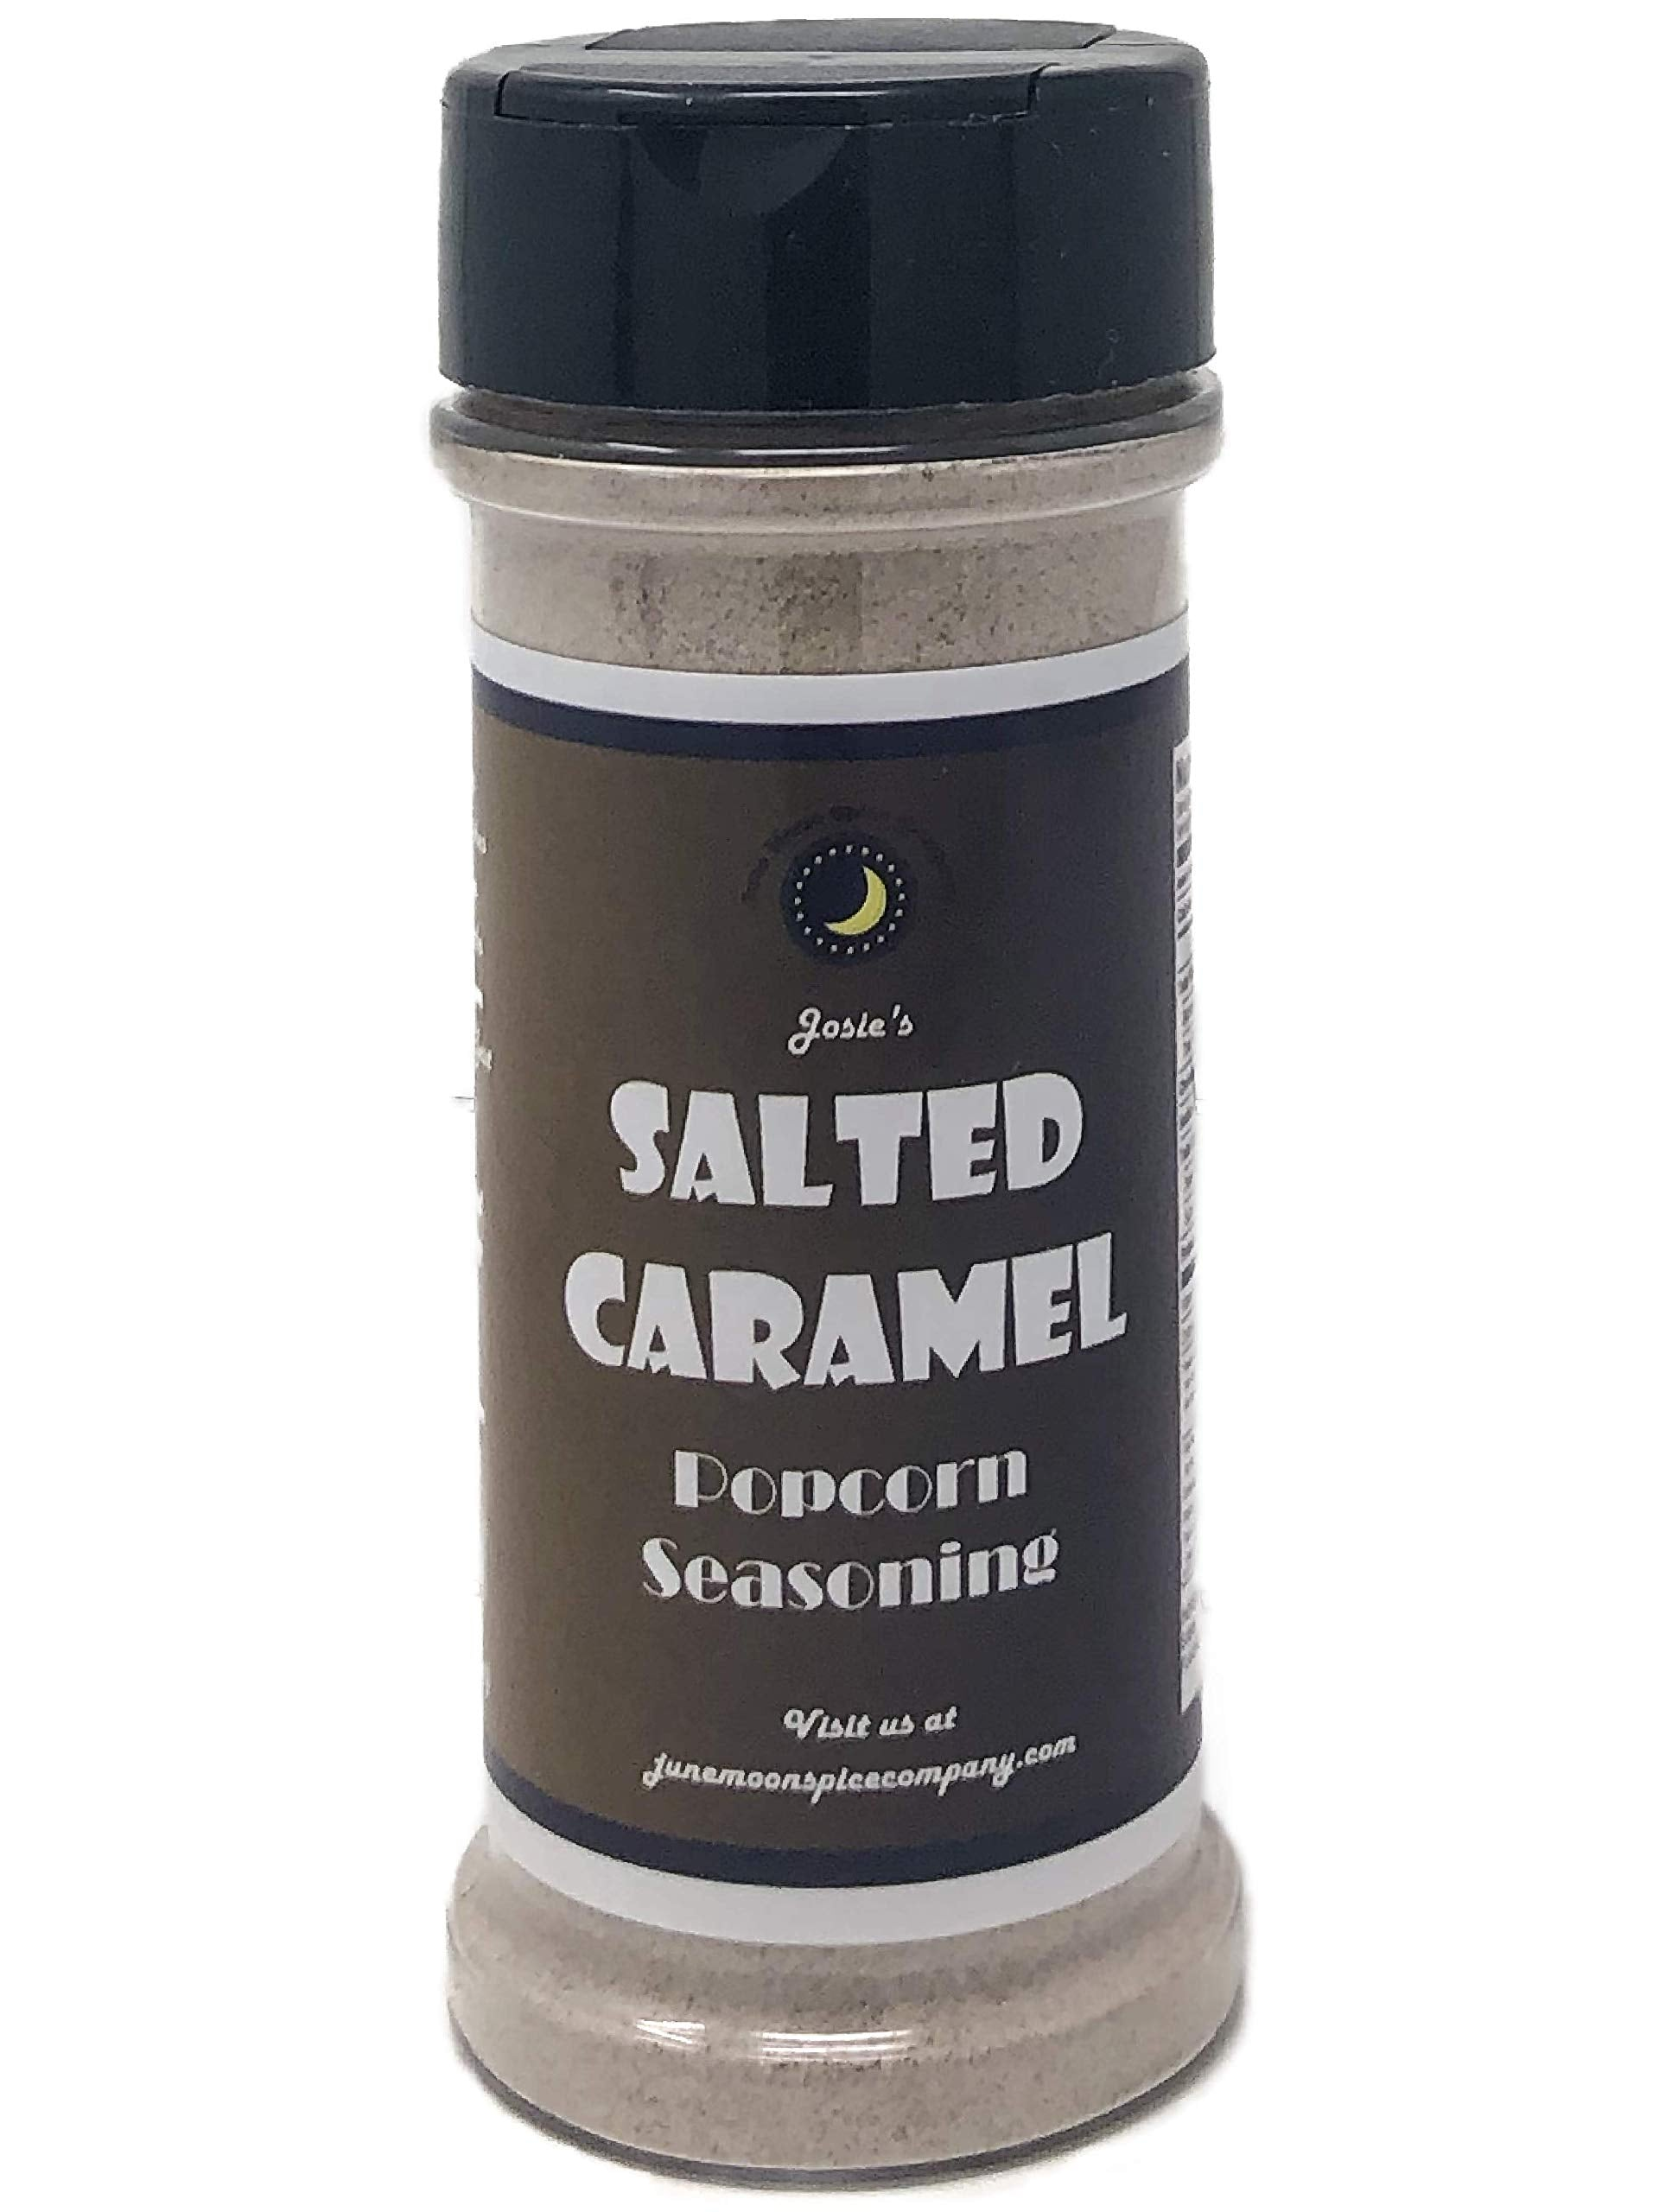 Salted Caramel Popcorn Seasoning